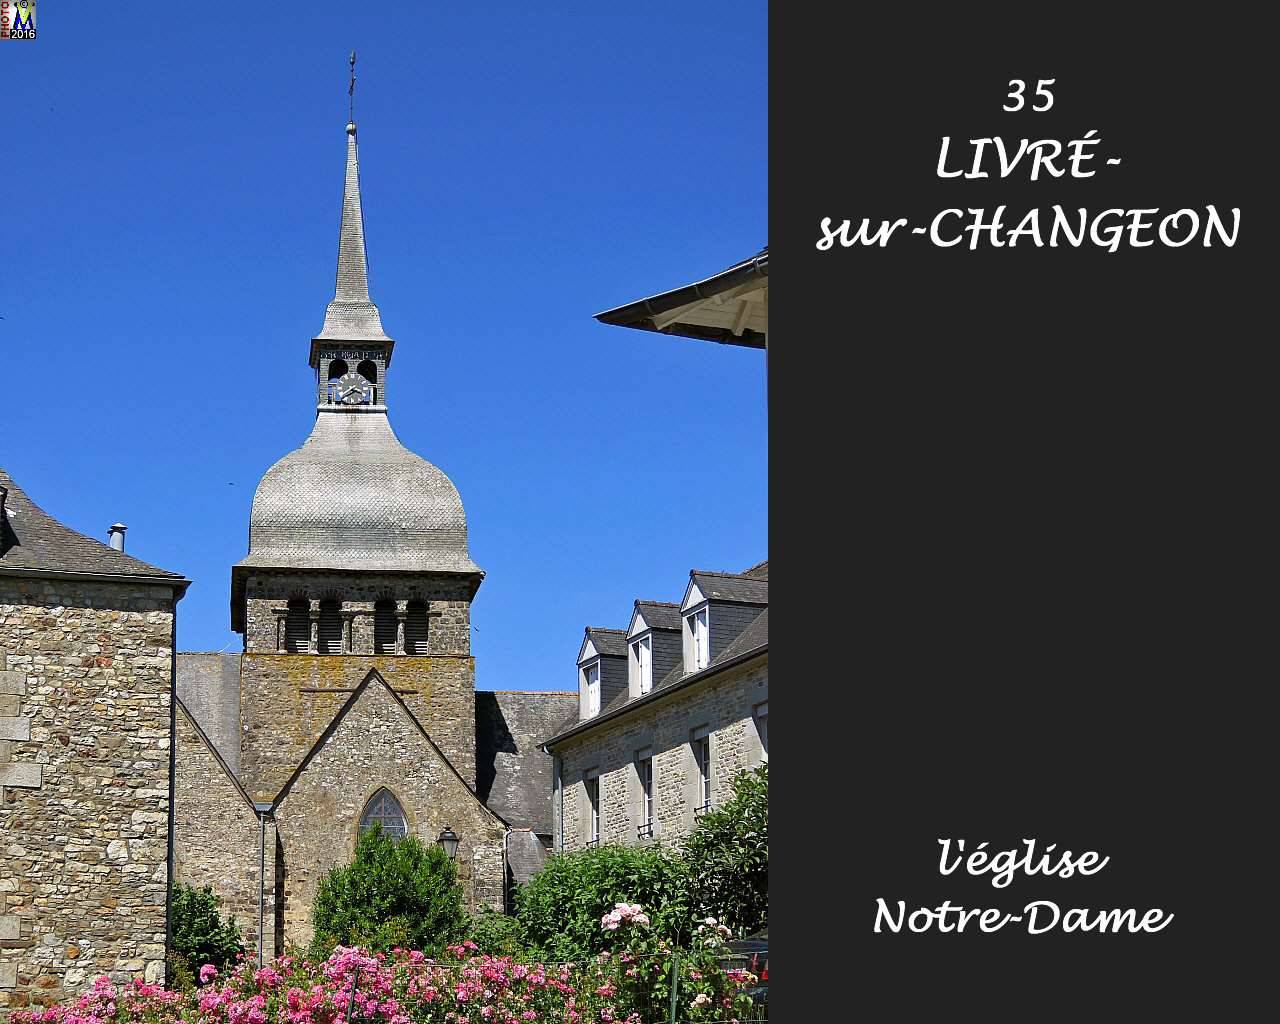 35LIVRE-CHANGEON_eglise_104.jpg